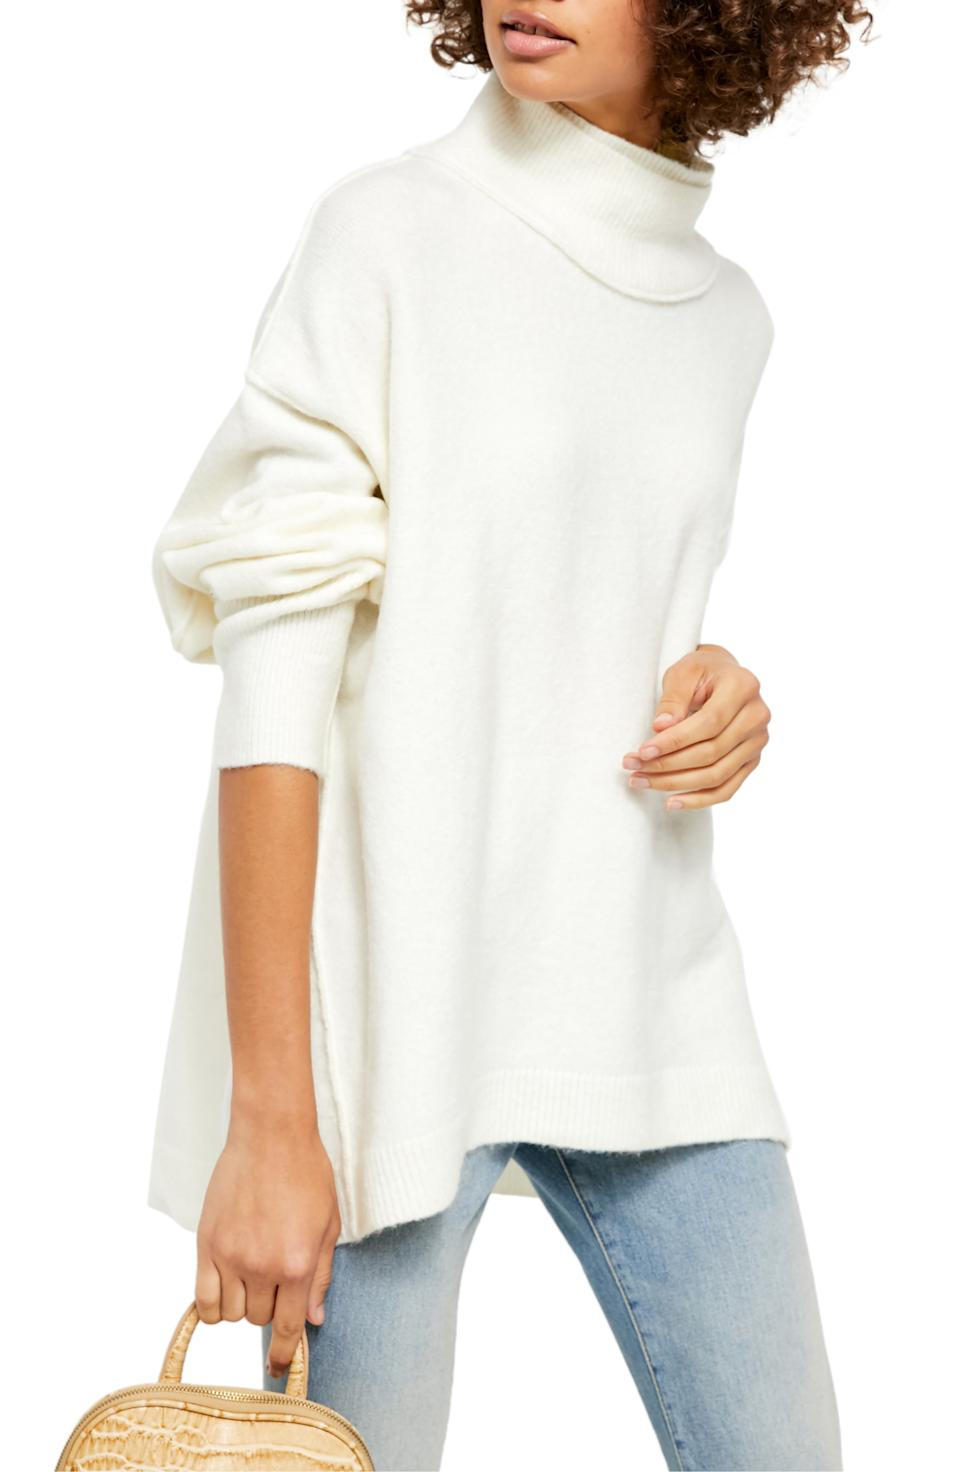 Free People Afterglow Mock Neck Top. Image via Nordstrom.